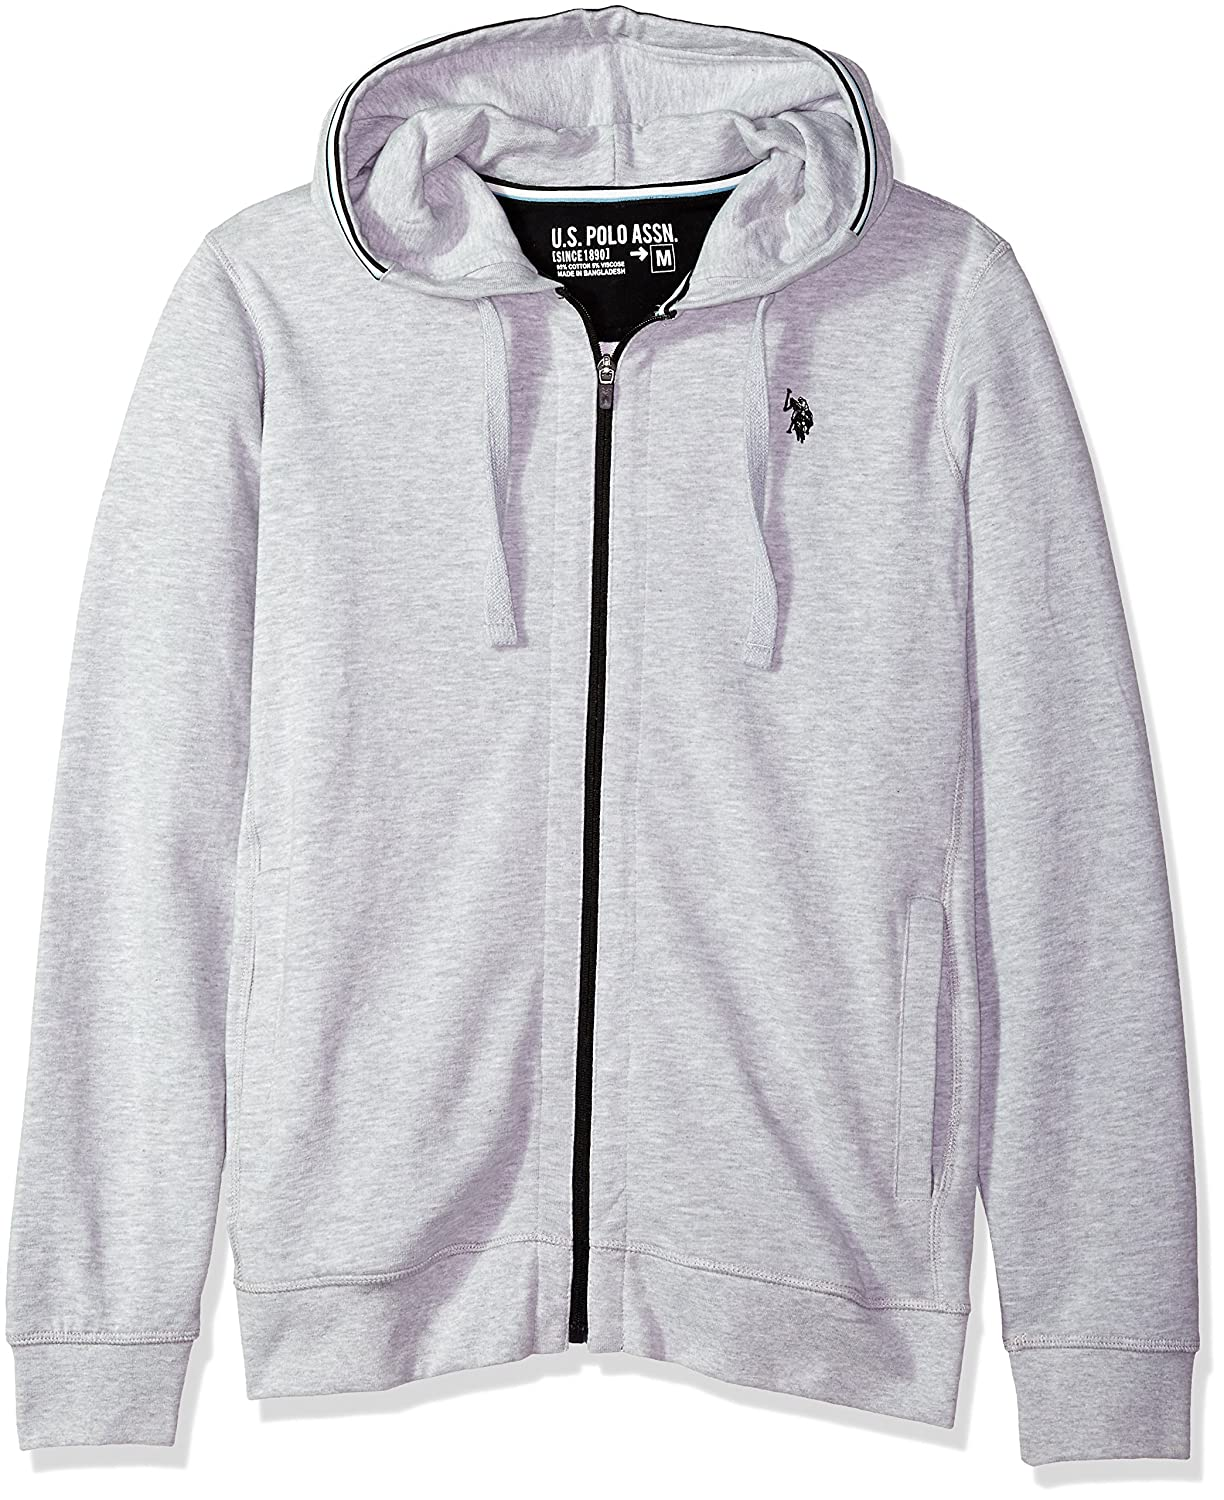 U.S. Polo Assn. Mens Zip Up Hoodie